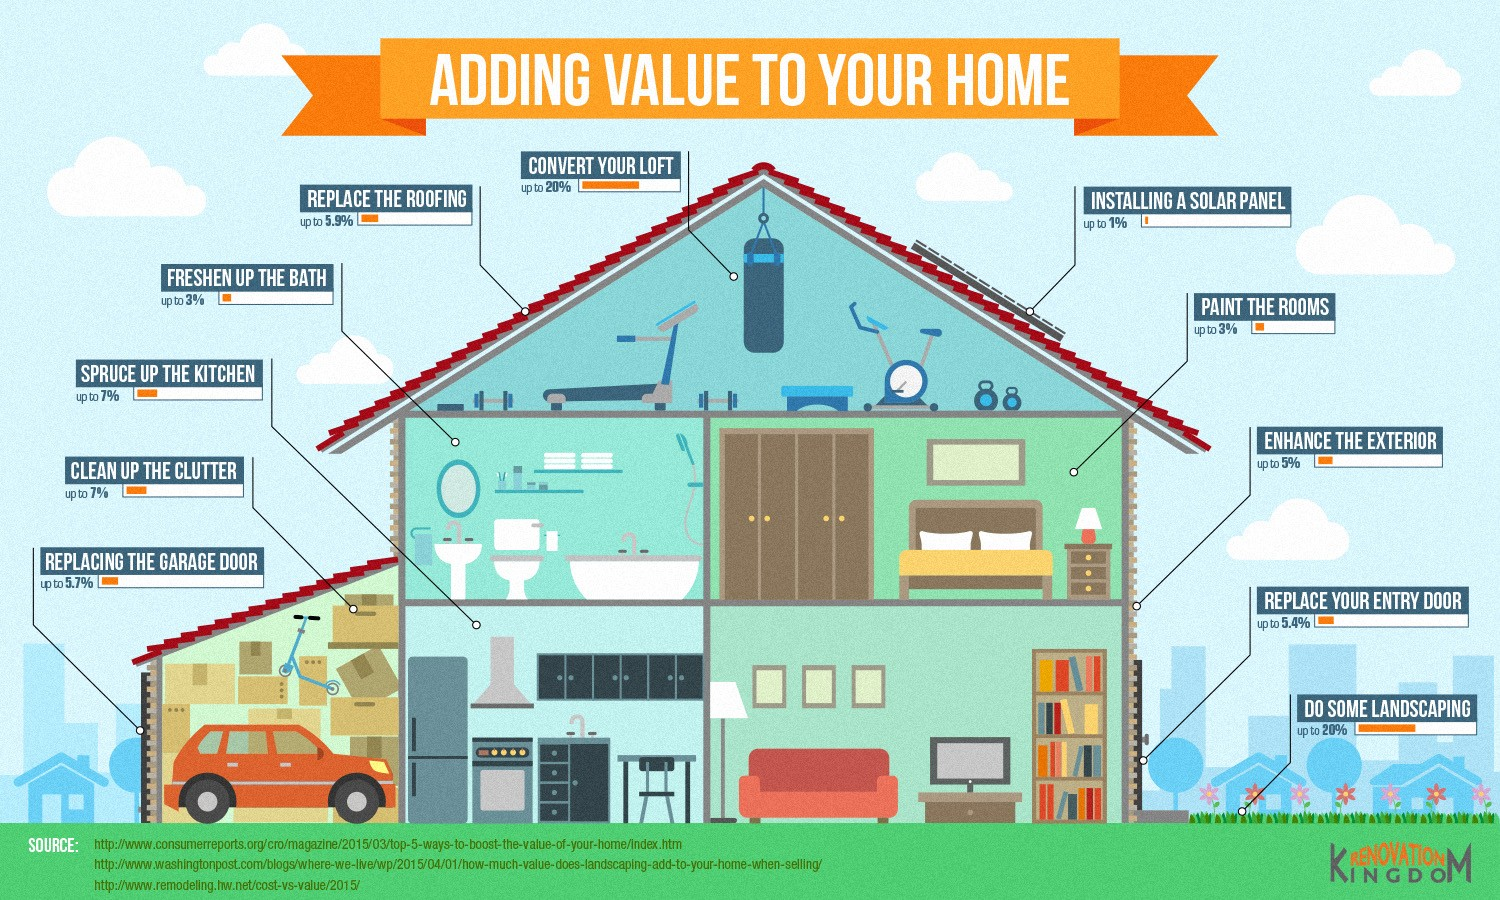 Home Improvements That Add Value